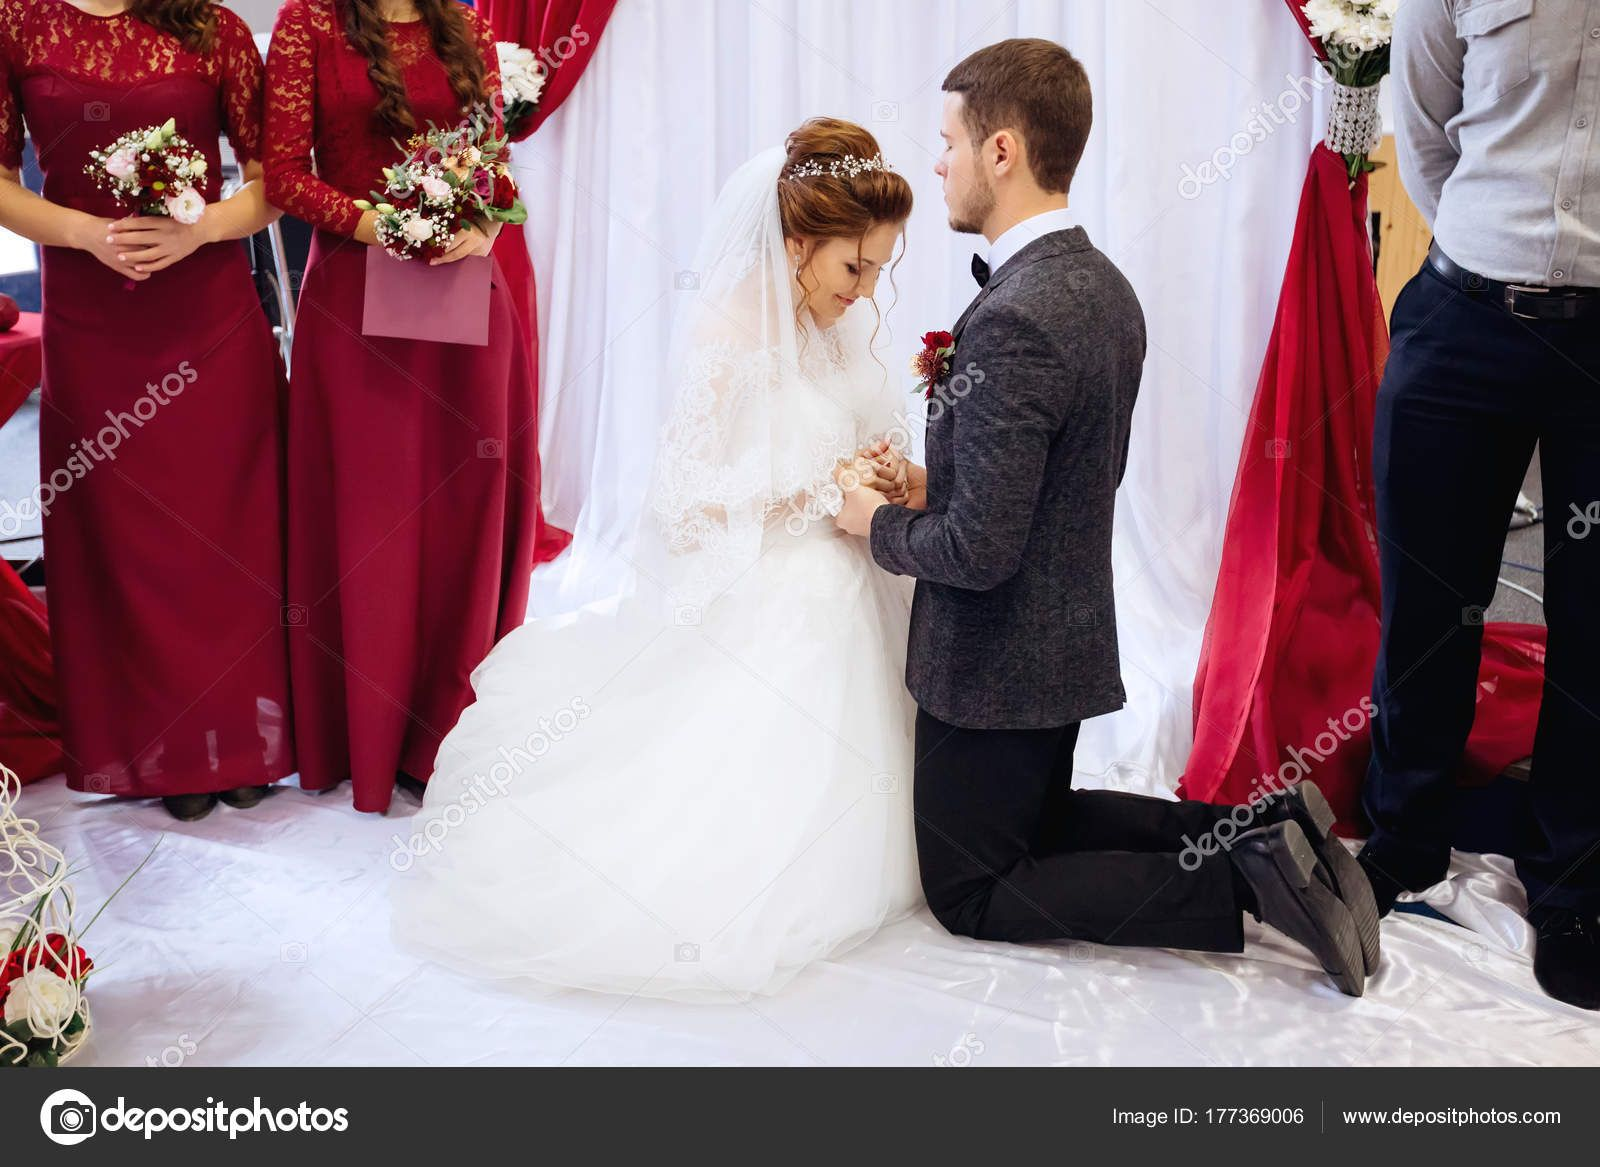 Maybe Something Like This During The Ceremony But Only I Kneel Of Course That Will Make Him Taller For A Change Dresses Ceremony Wedding Dresses